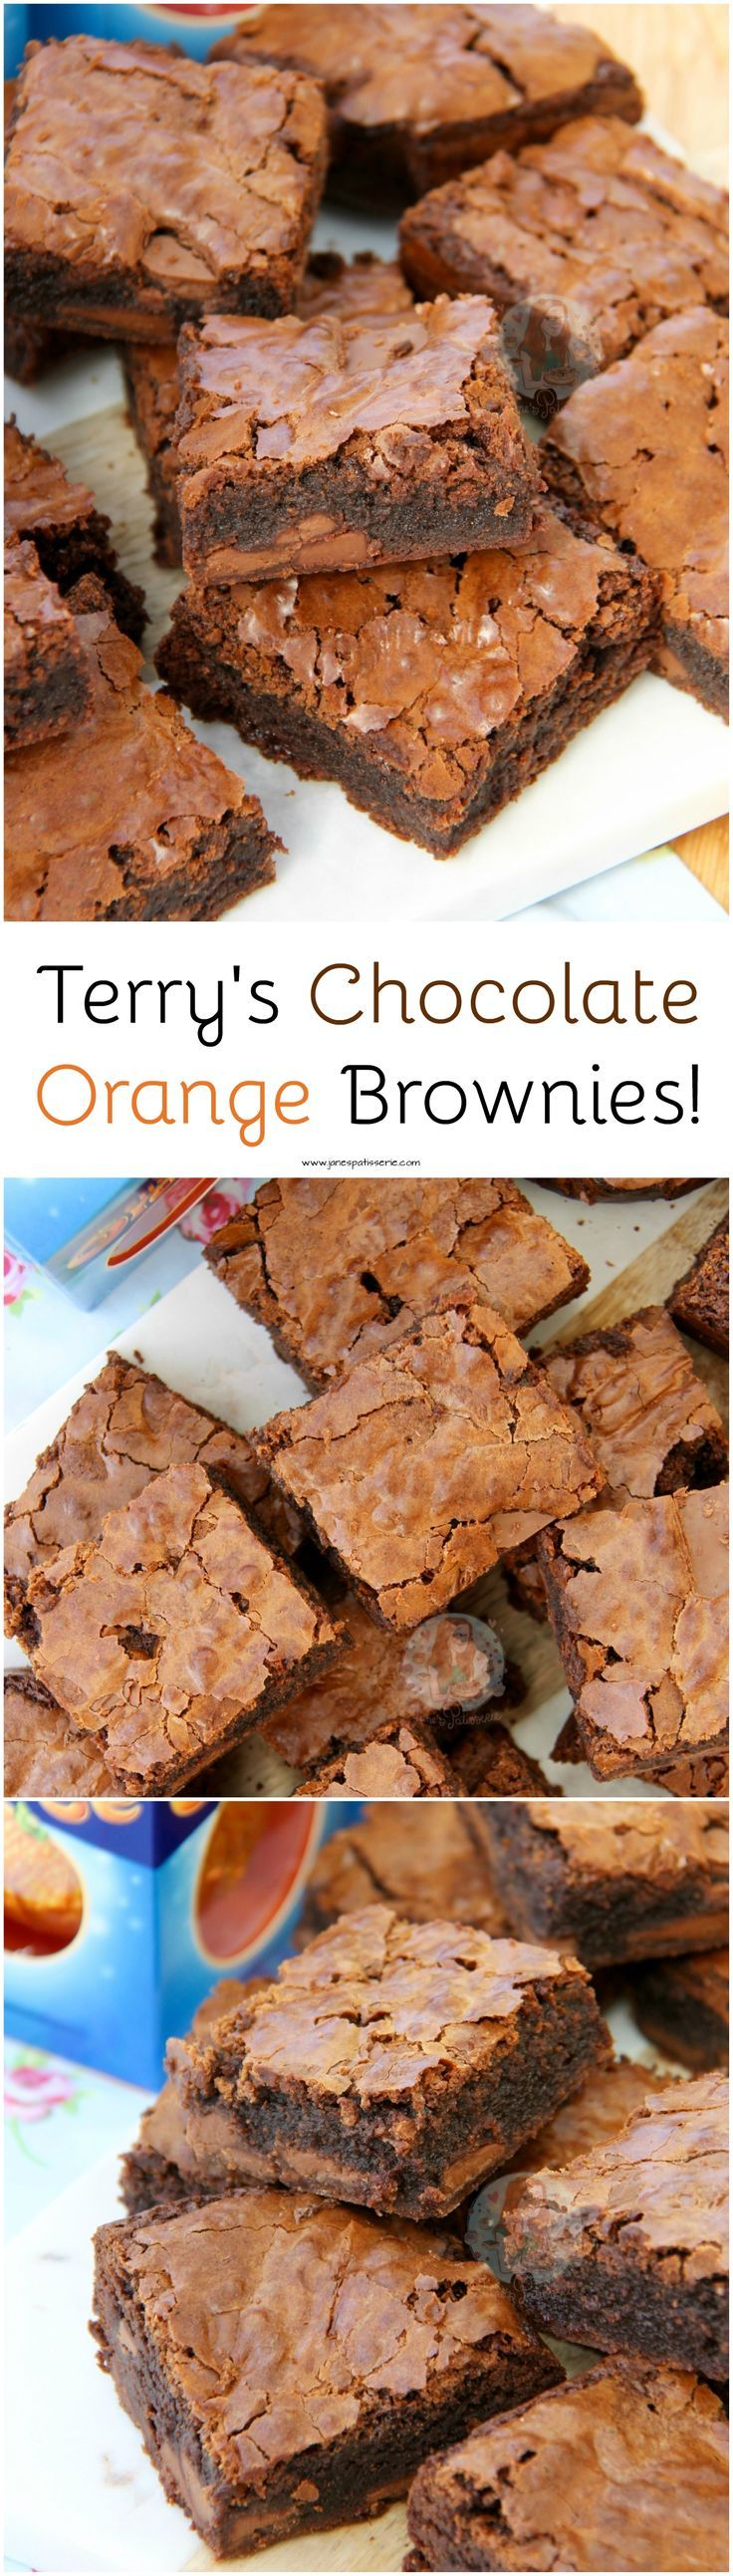 Terry's Chocolate Orange Brownies!! :heart: Moist, Chocolatey and Delicious Brownies with a hint of Orange, dotted with Terry's Chocolate Orange Chunks!